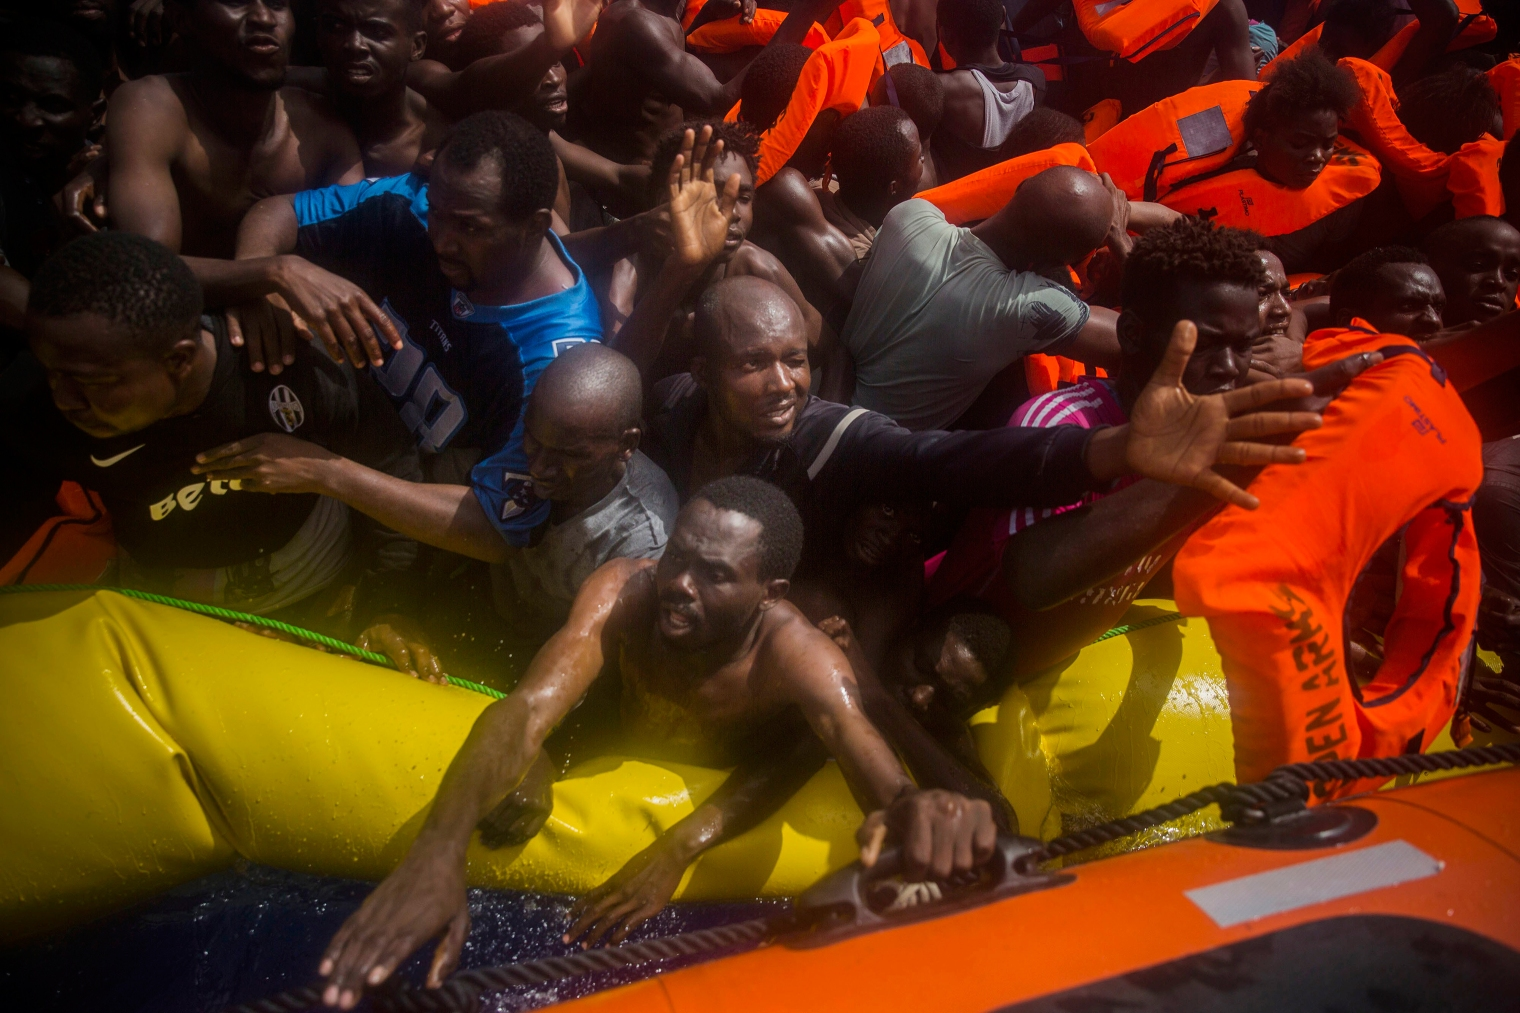 Migrants receive life jackets during the rescue.